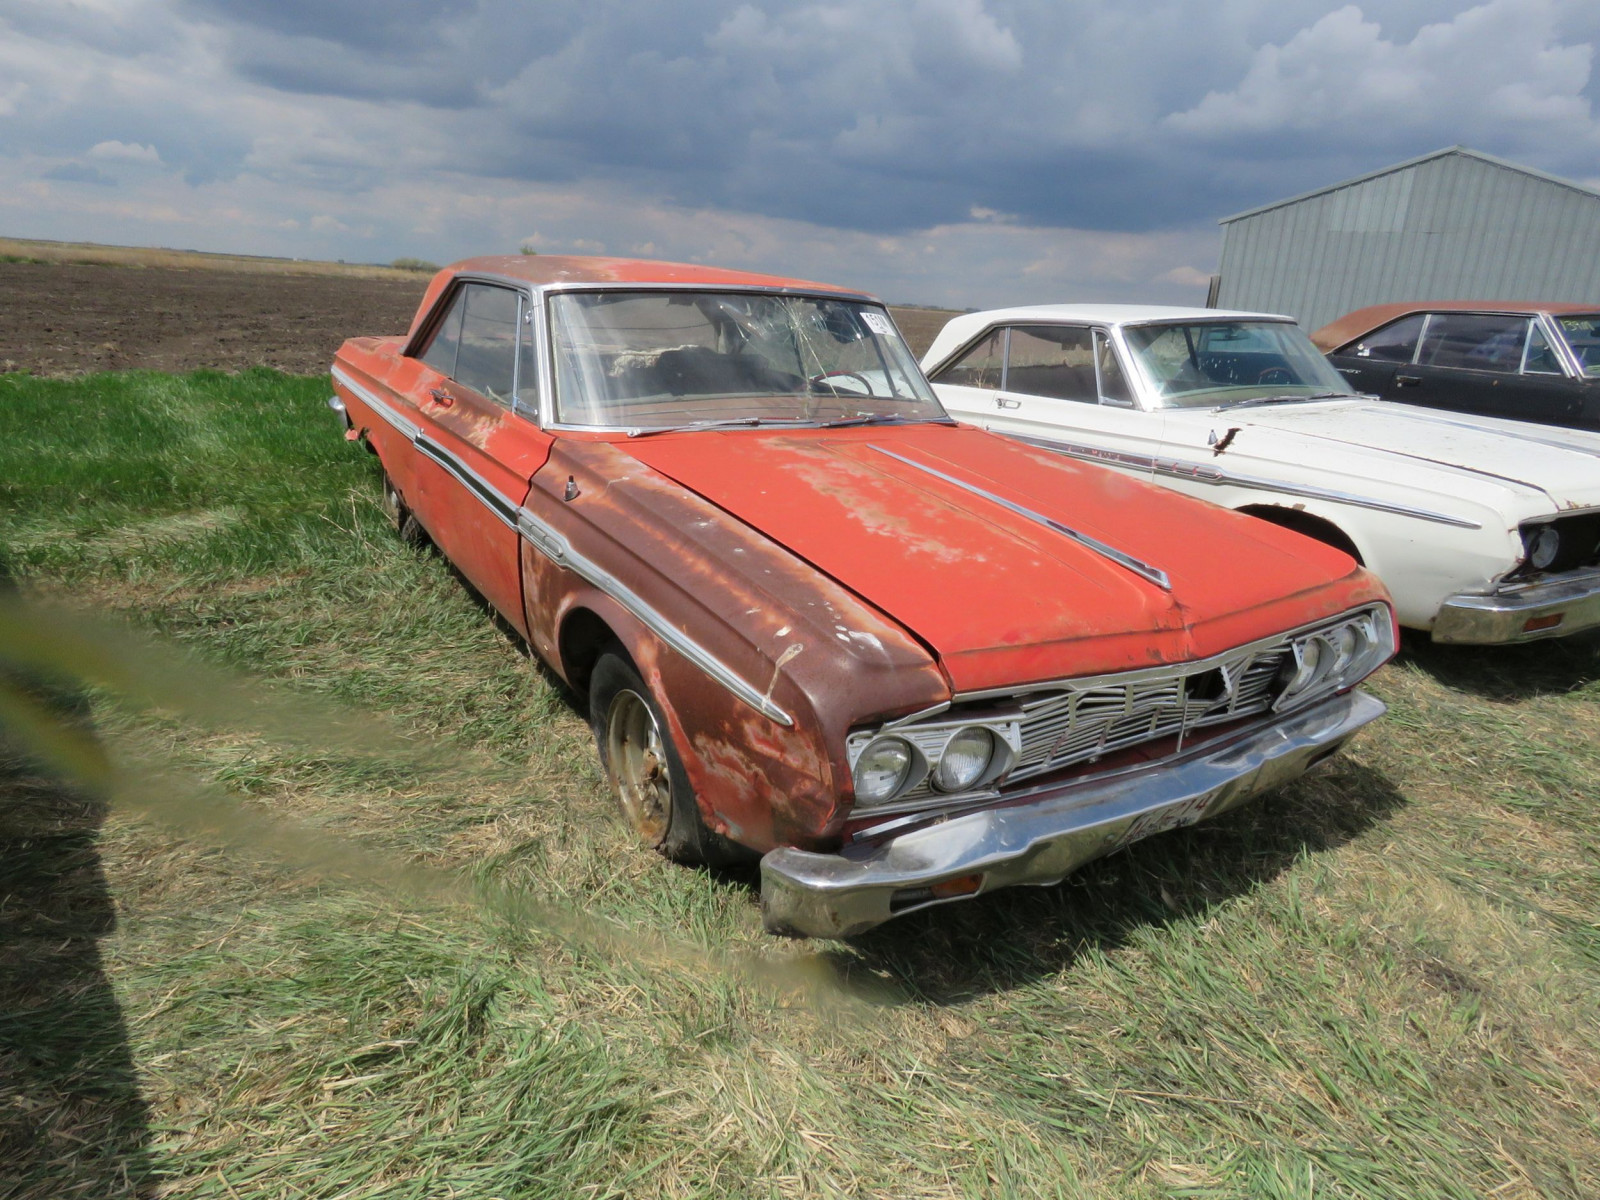 Plymouth Fury 2dr HT - Image 2